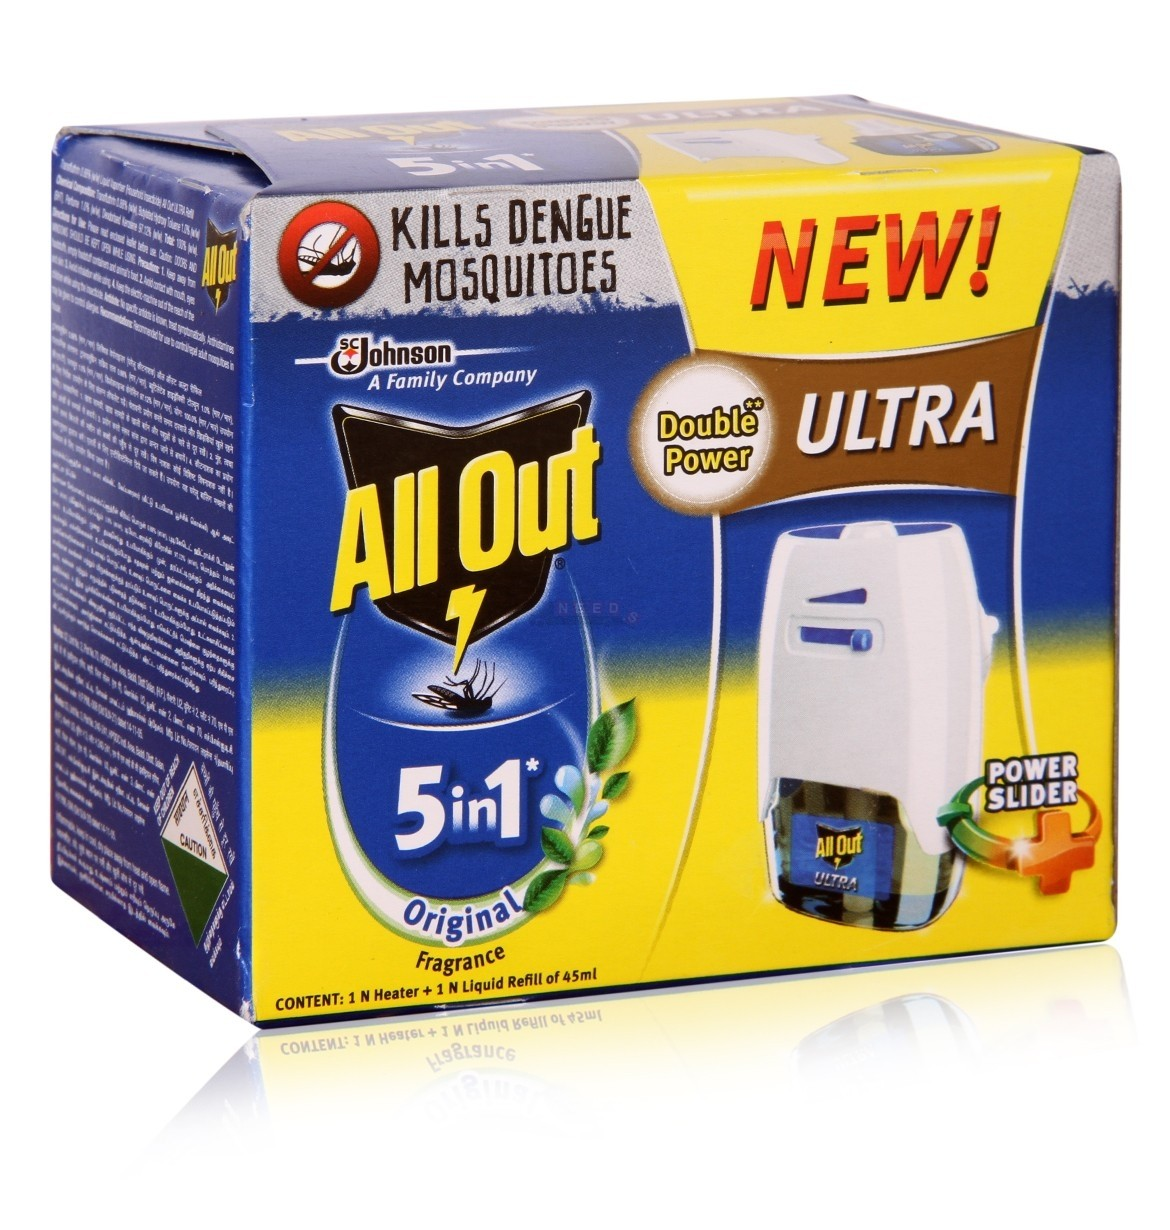 ALL OUT POWER SLIDER MACHINE & REFILL - 45 ML